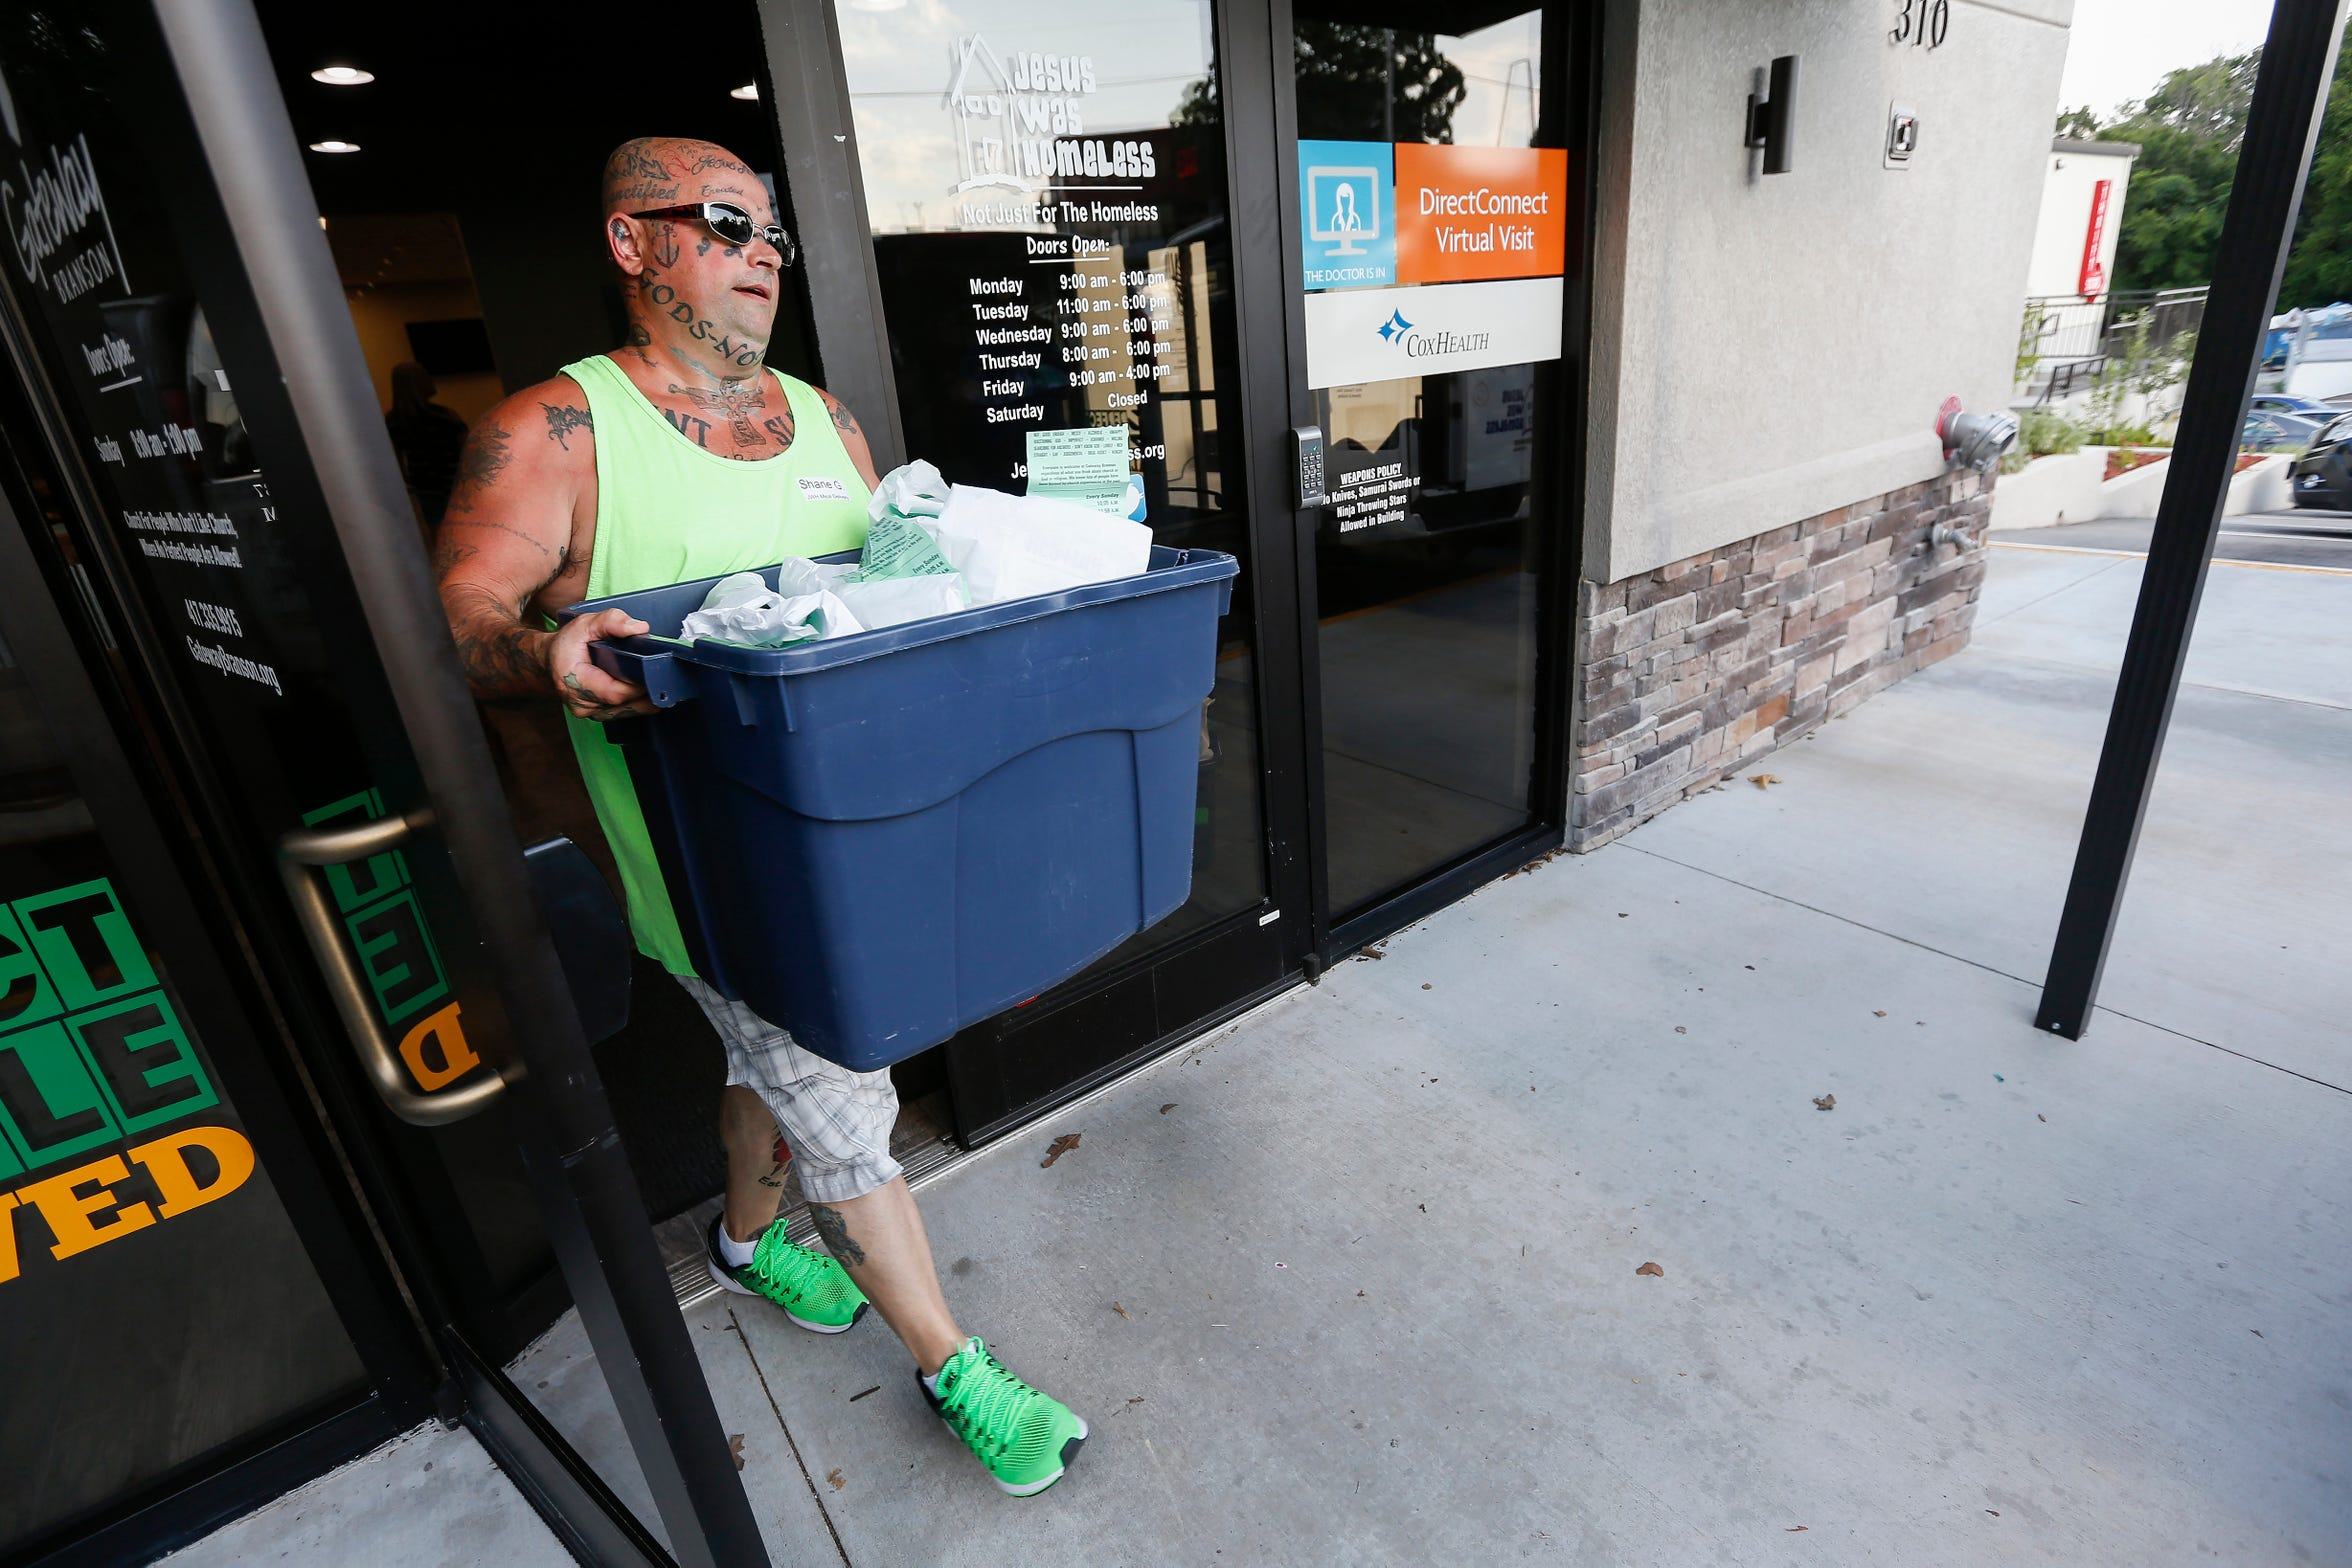 Shane Gehlert, of Branson, loads meals into vans at Jesus Was Homeless in Branson on Thursday, July 5, 2018. Volunteers were bringing meals to people living in extended stay hotels.